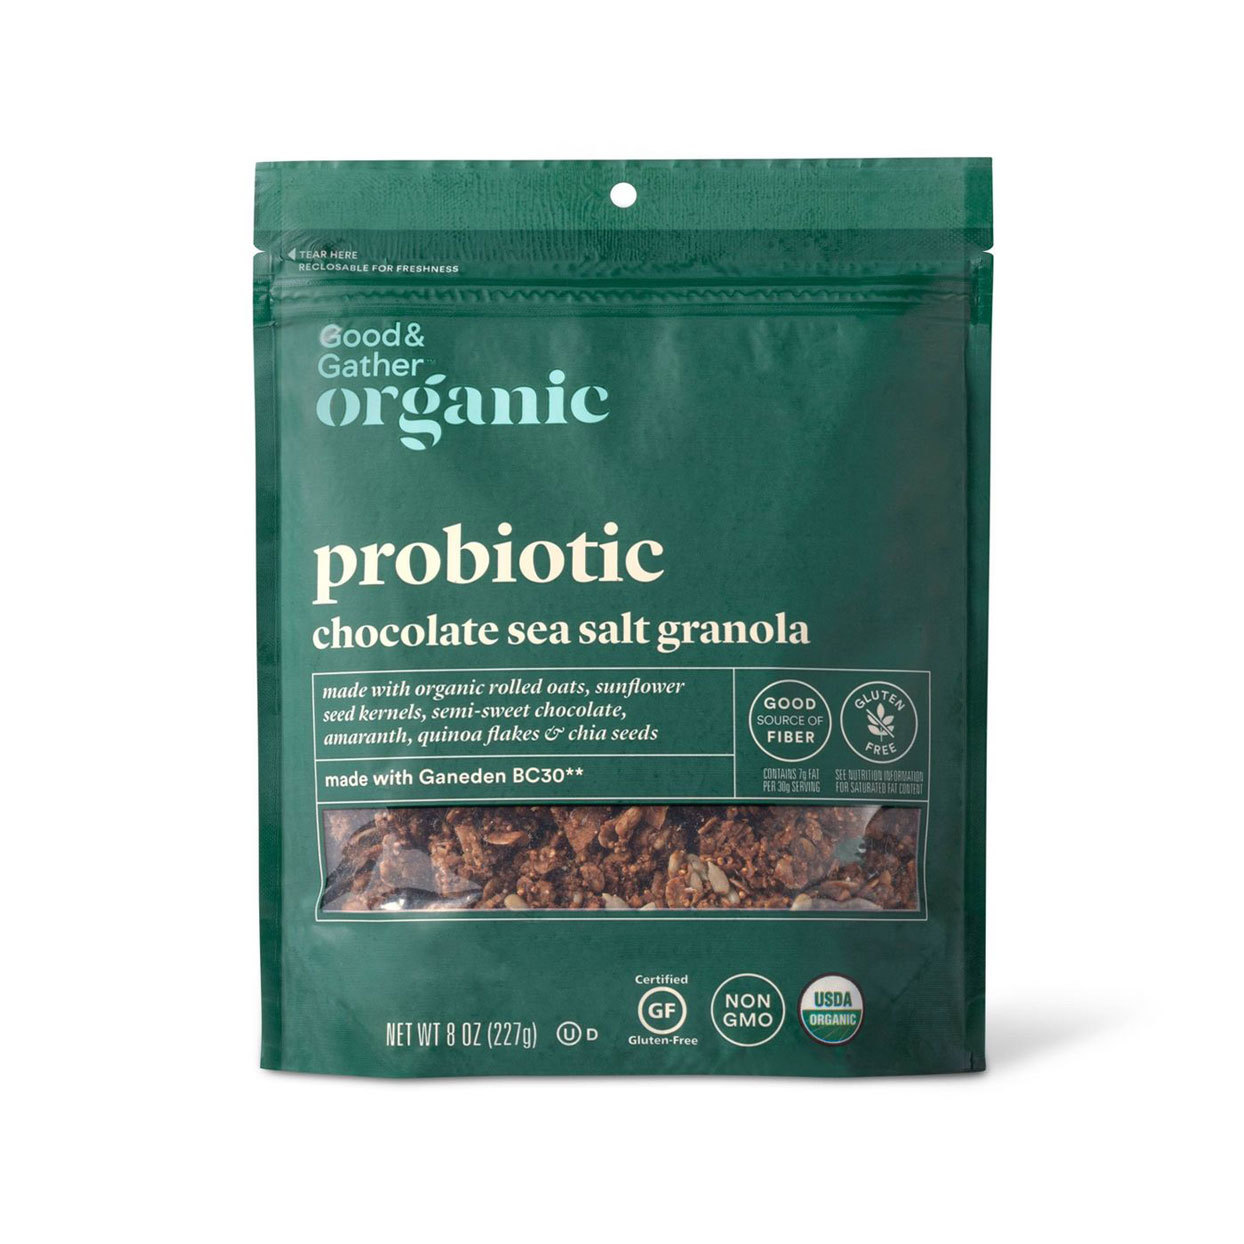 Bag of Target's organic probiotic chocolate sea salt granola